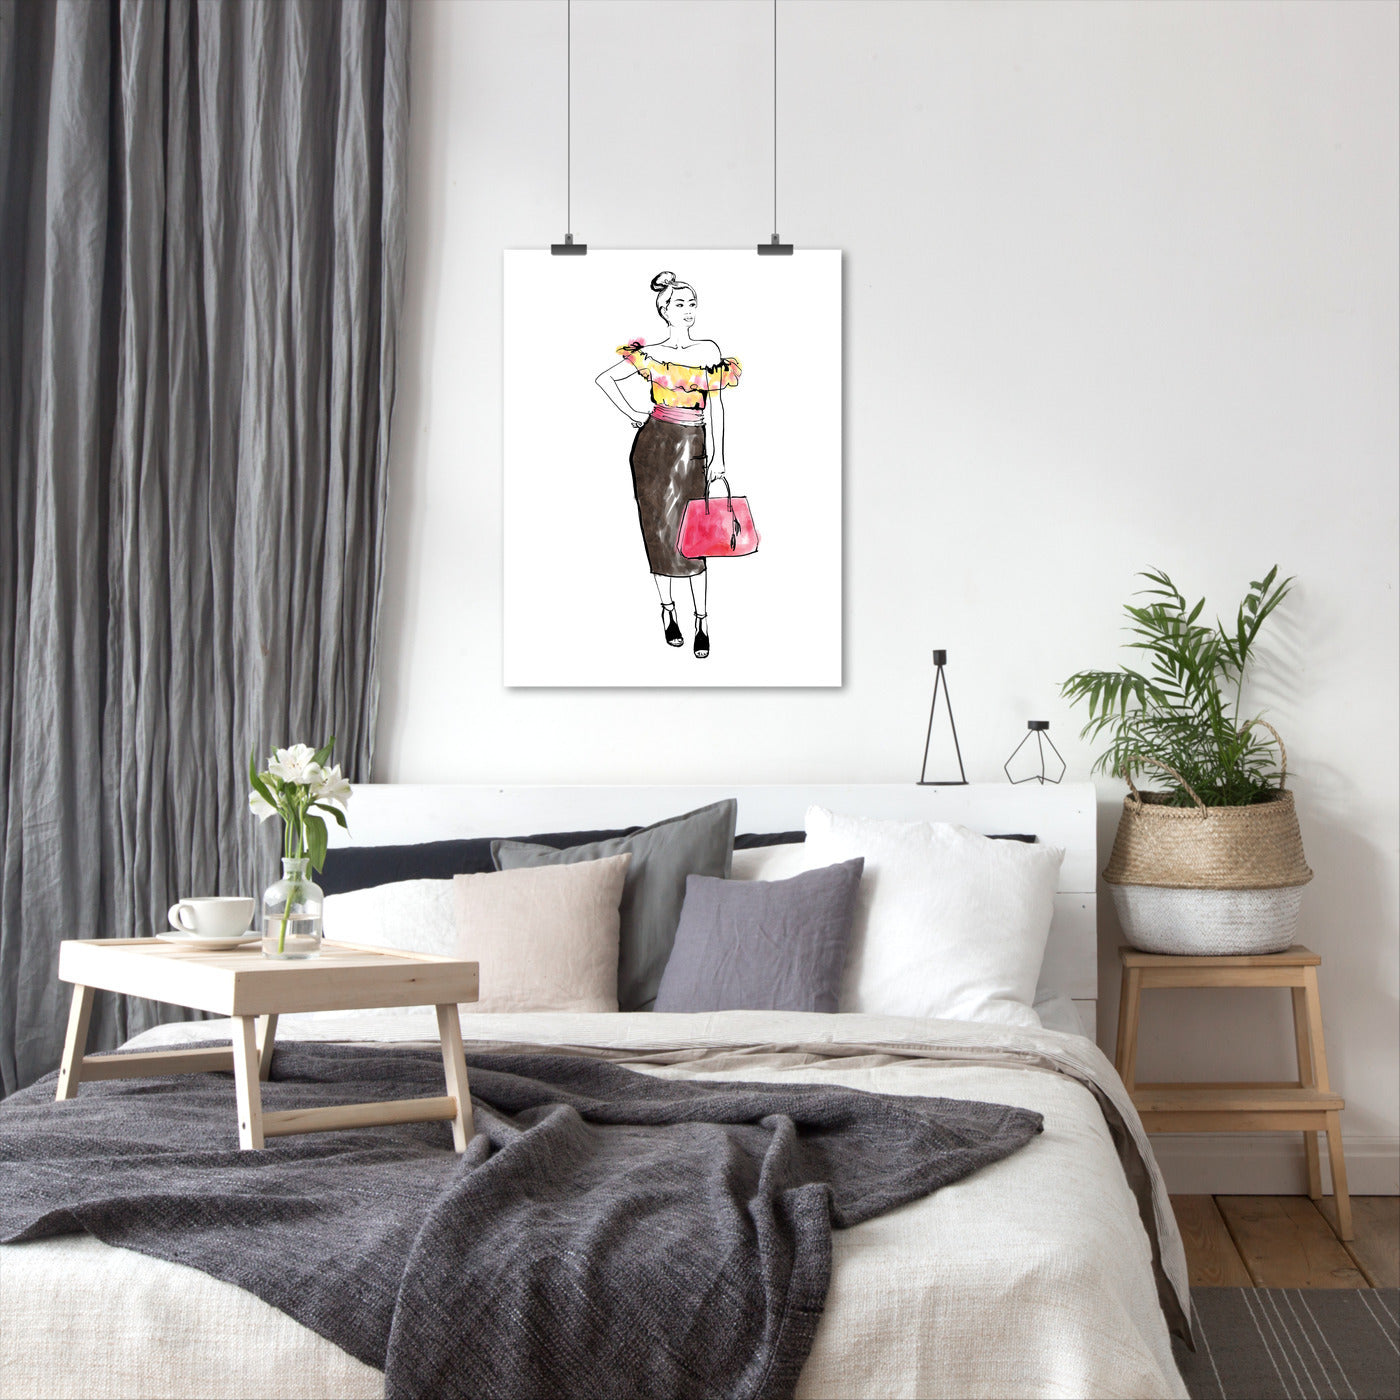 Fashion Girl by Blursbyai - Art Print - Americanflat